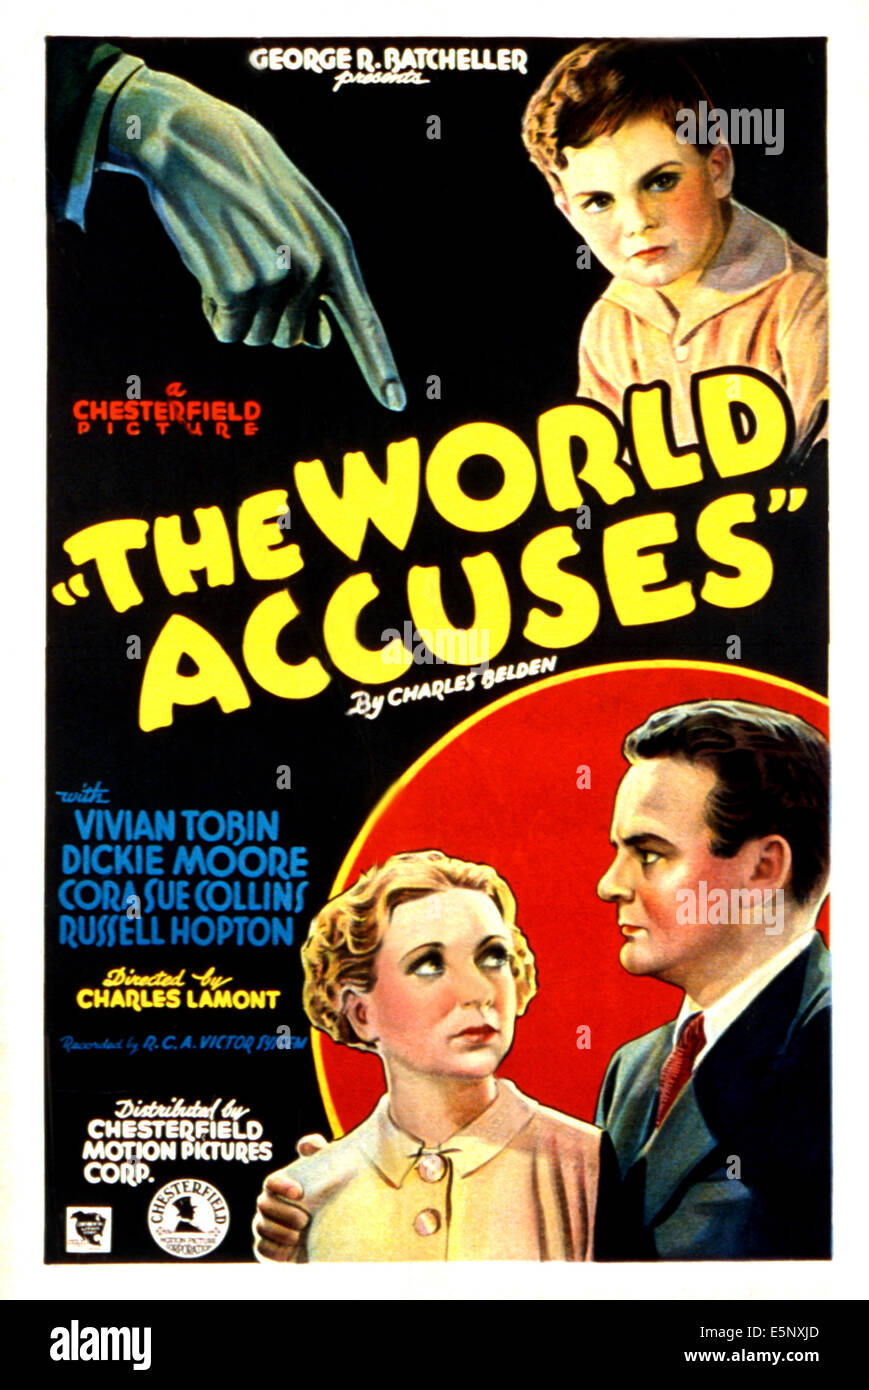 THE WORLD ACCUSES, clockwise from top right: Dickie Moore, Russell Hopton, Vivian Tobin, 1934 - Stock Image